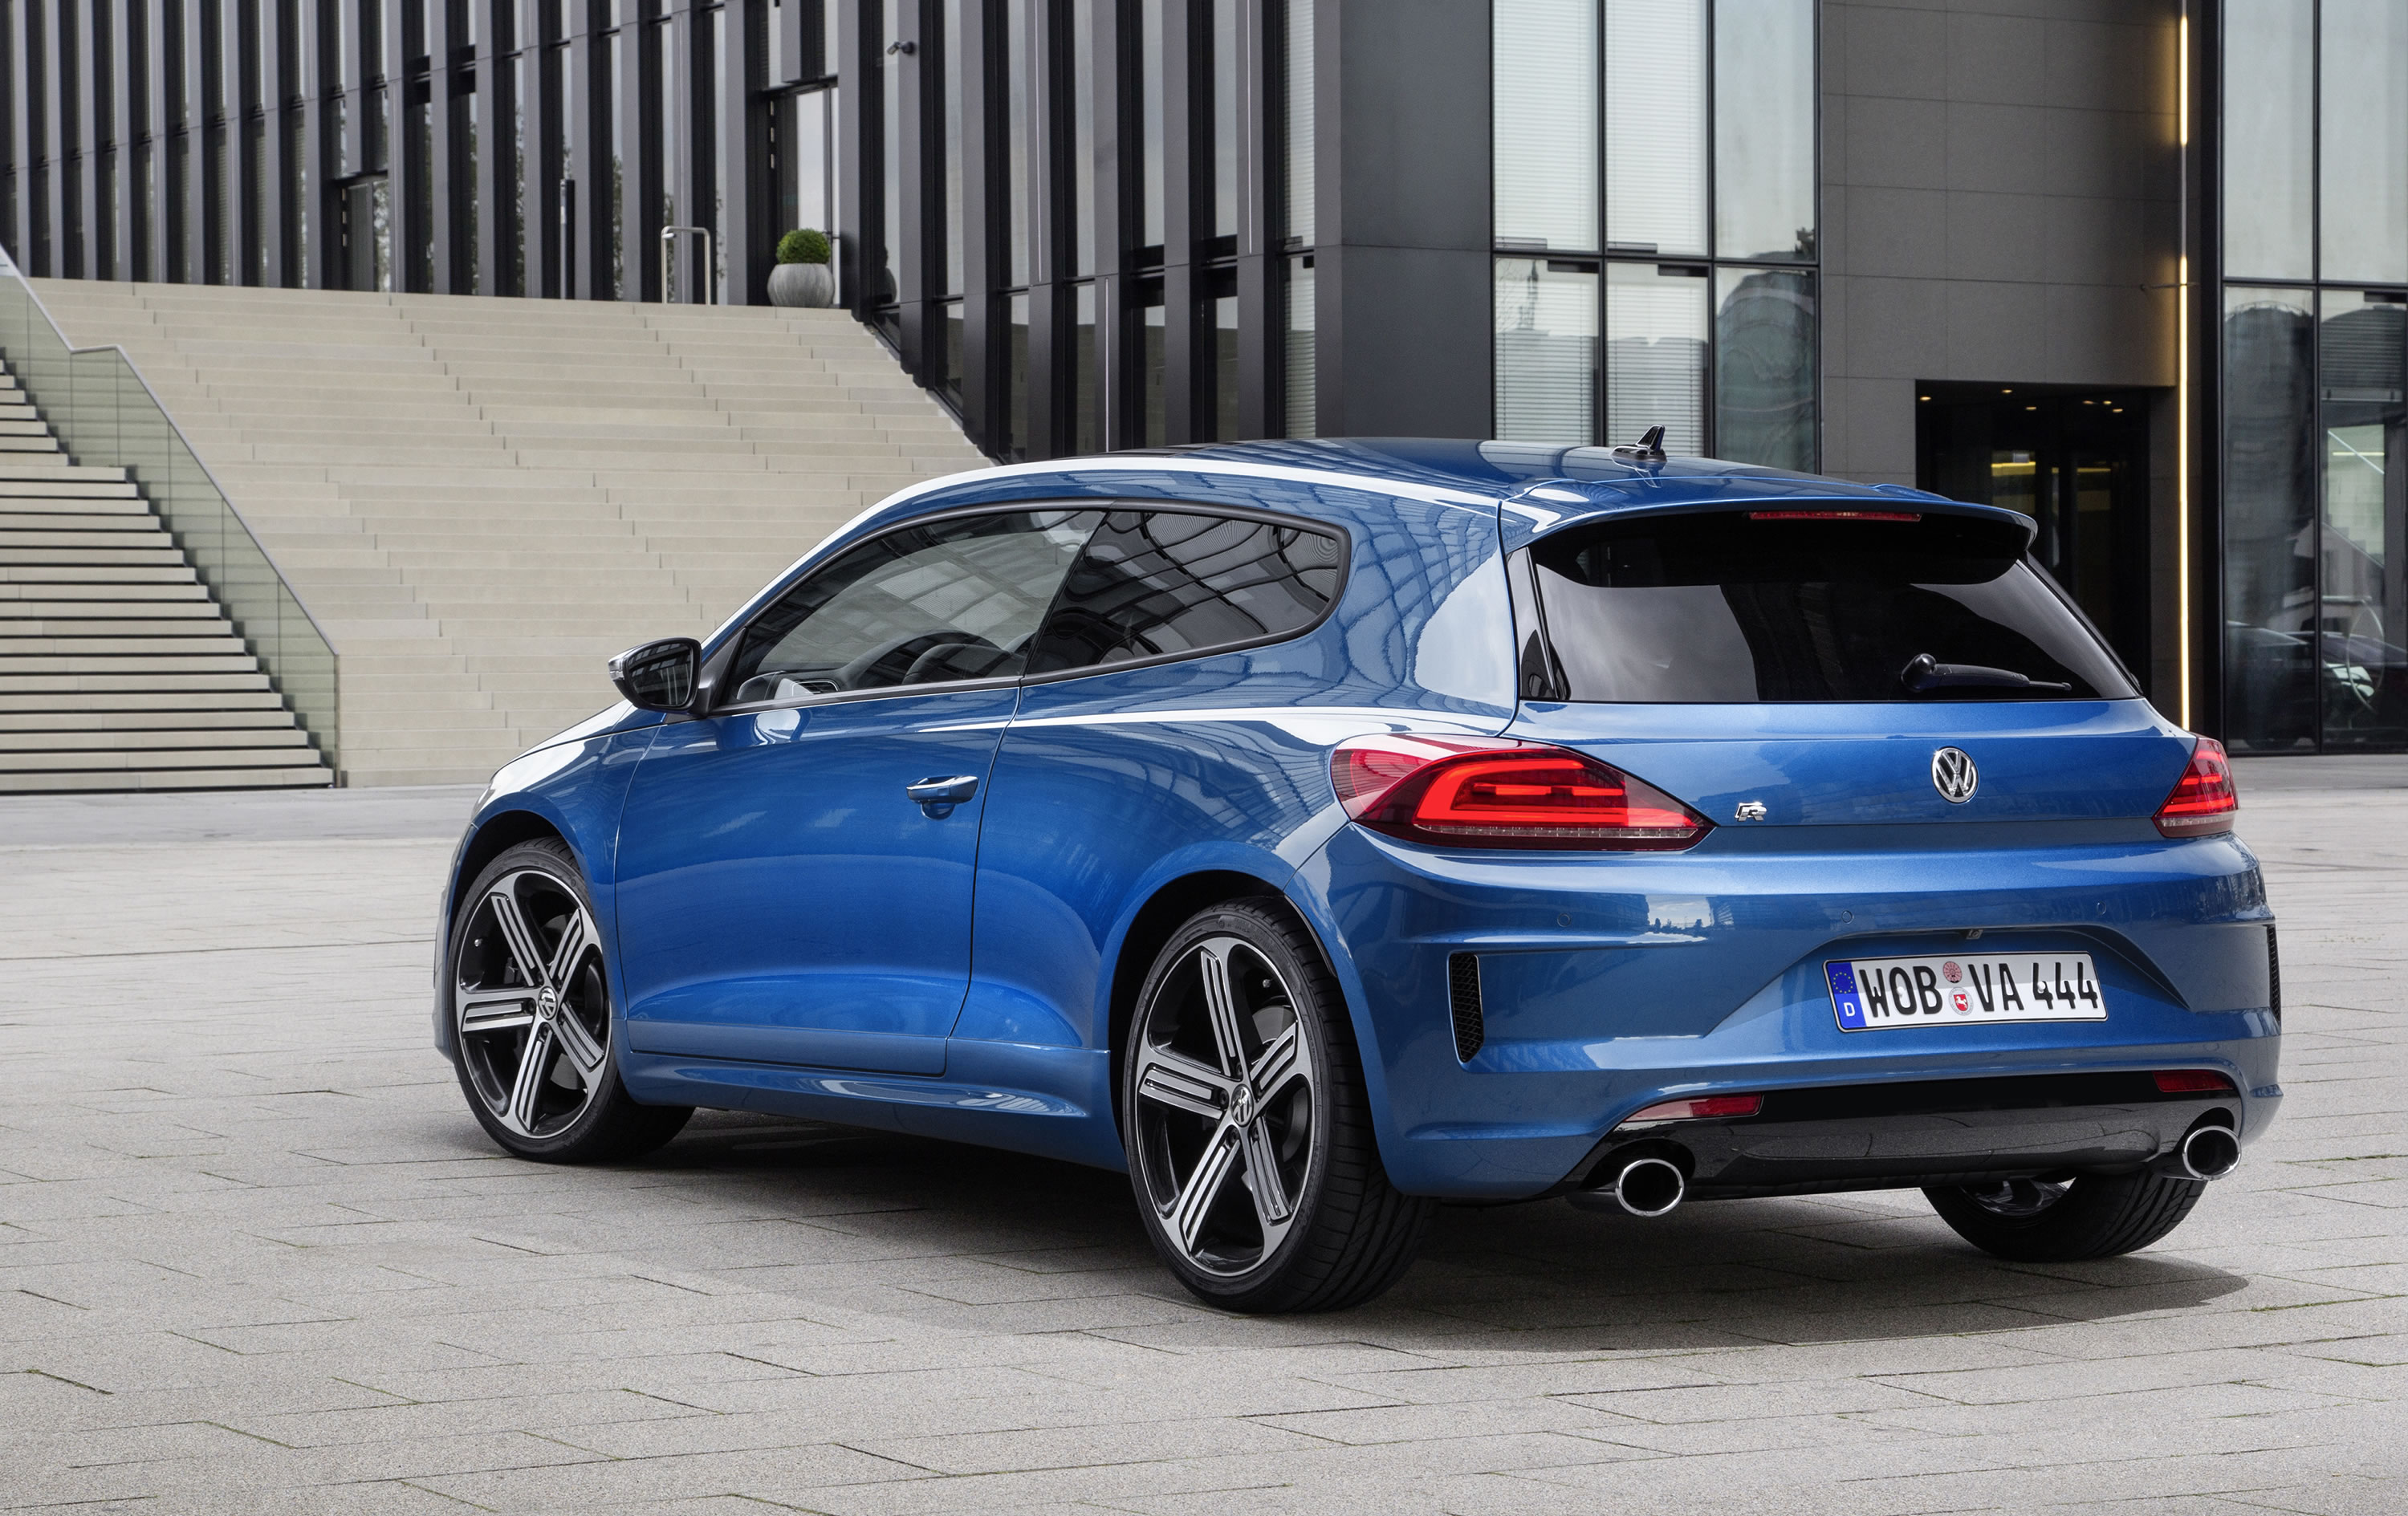 Delightful Volkswagen Has Given A Sleek New Look To Its Scirocco R Hatchback Coupe  Which Will Also Feature A More Powerful And Efficient Engine In The 2015  Model Year.